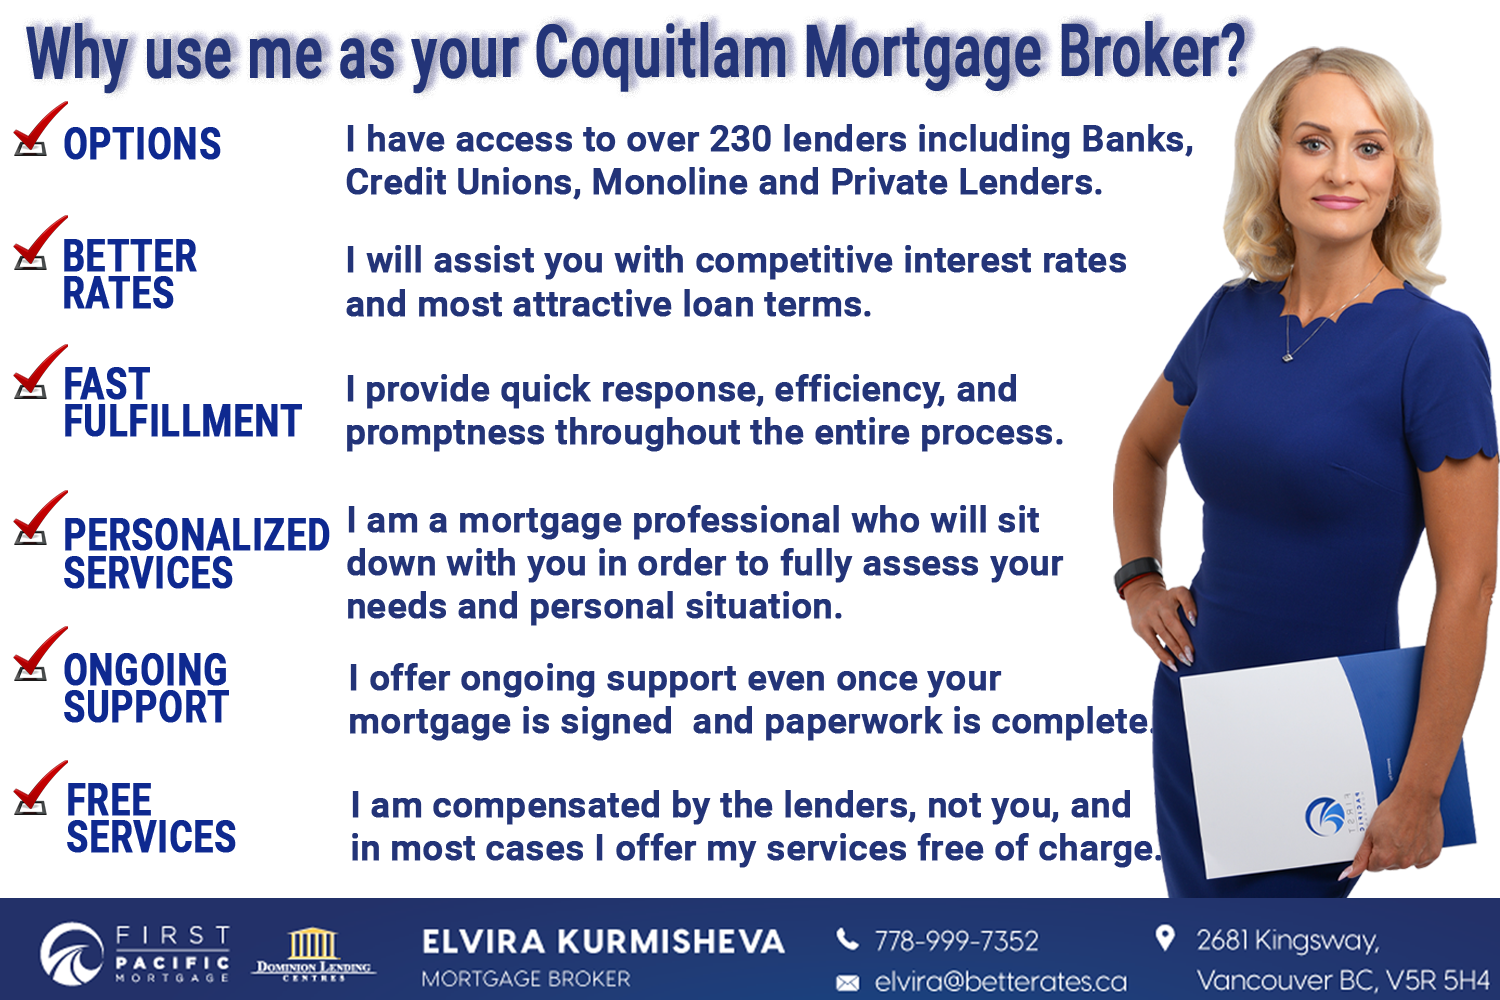 Picture of Coquitlam mortgage broker